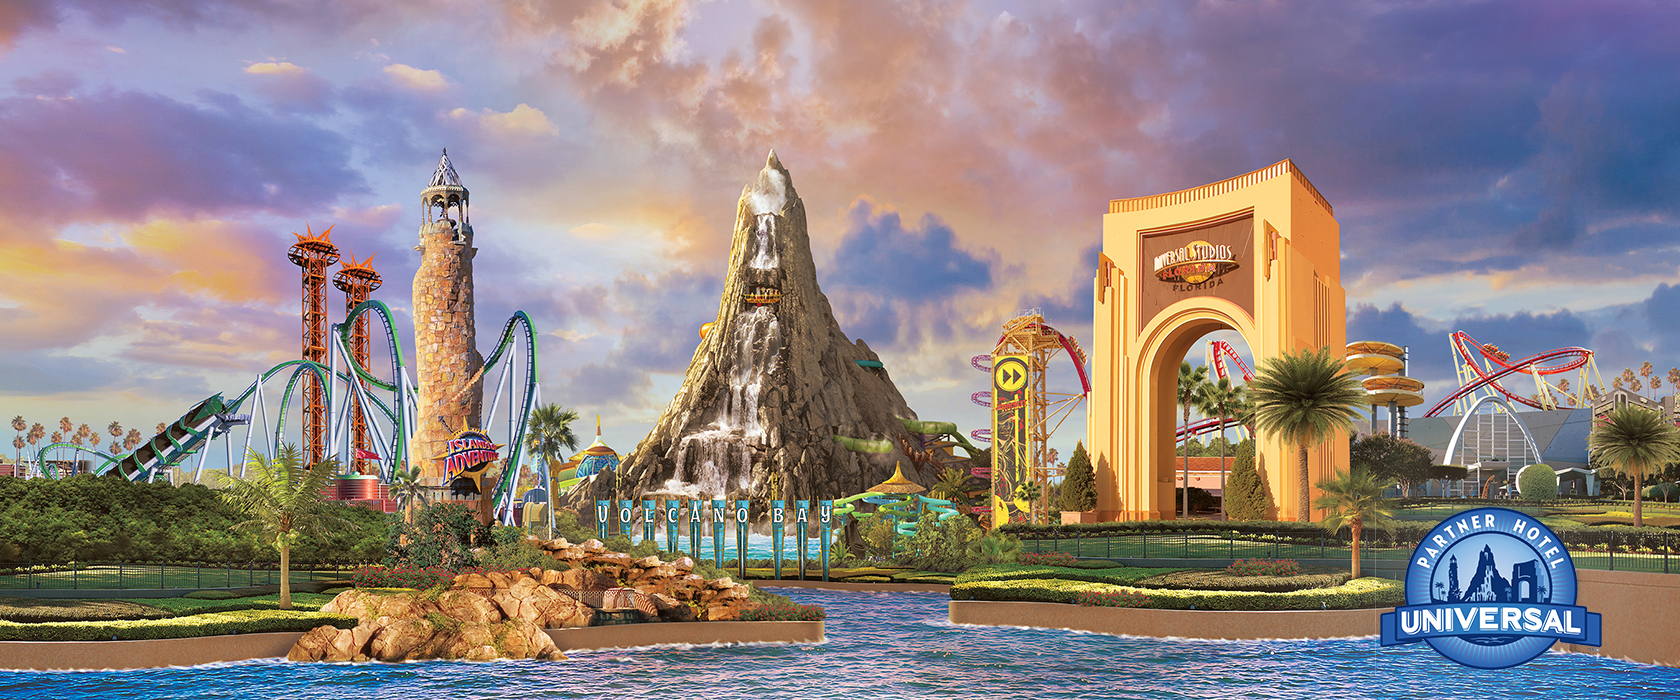 Universal Orlando Vacation Package